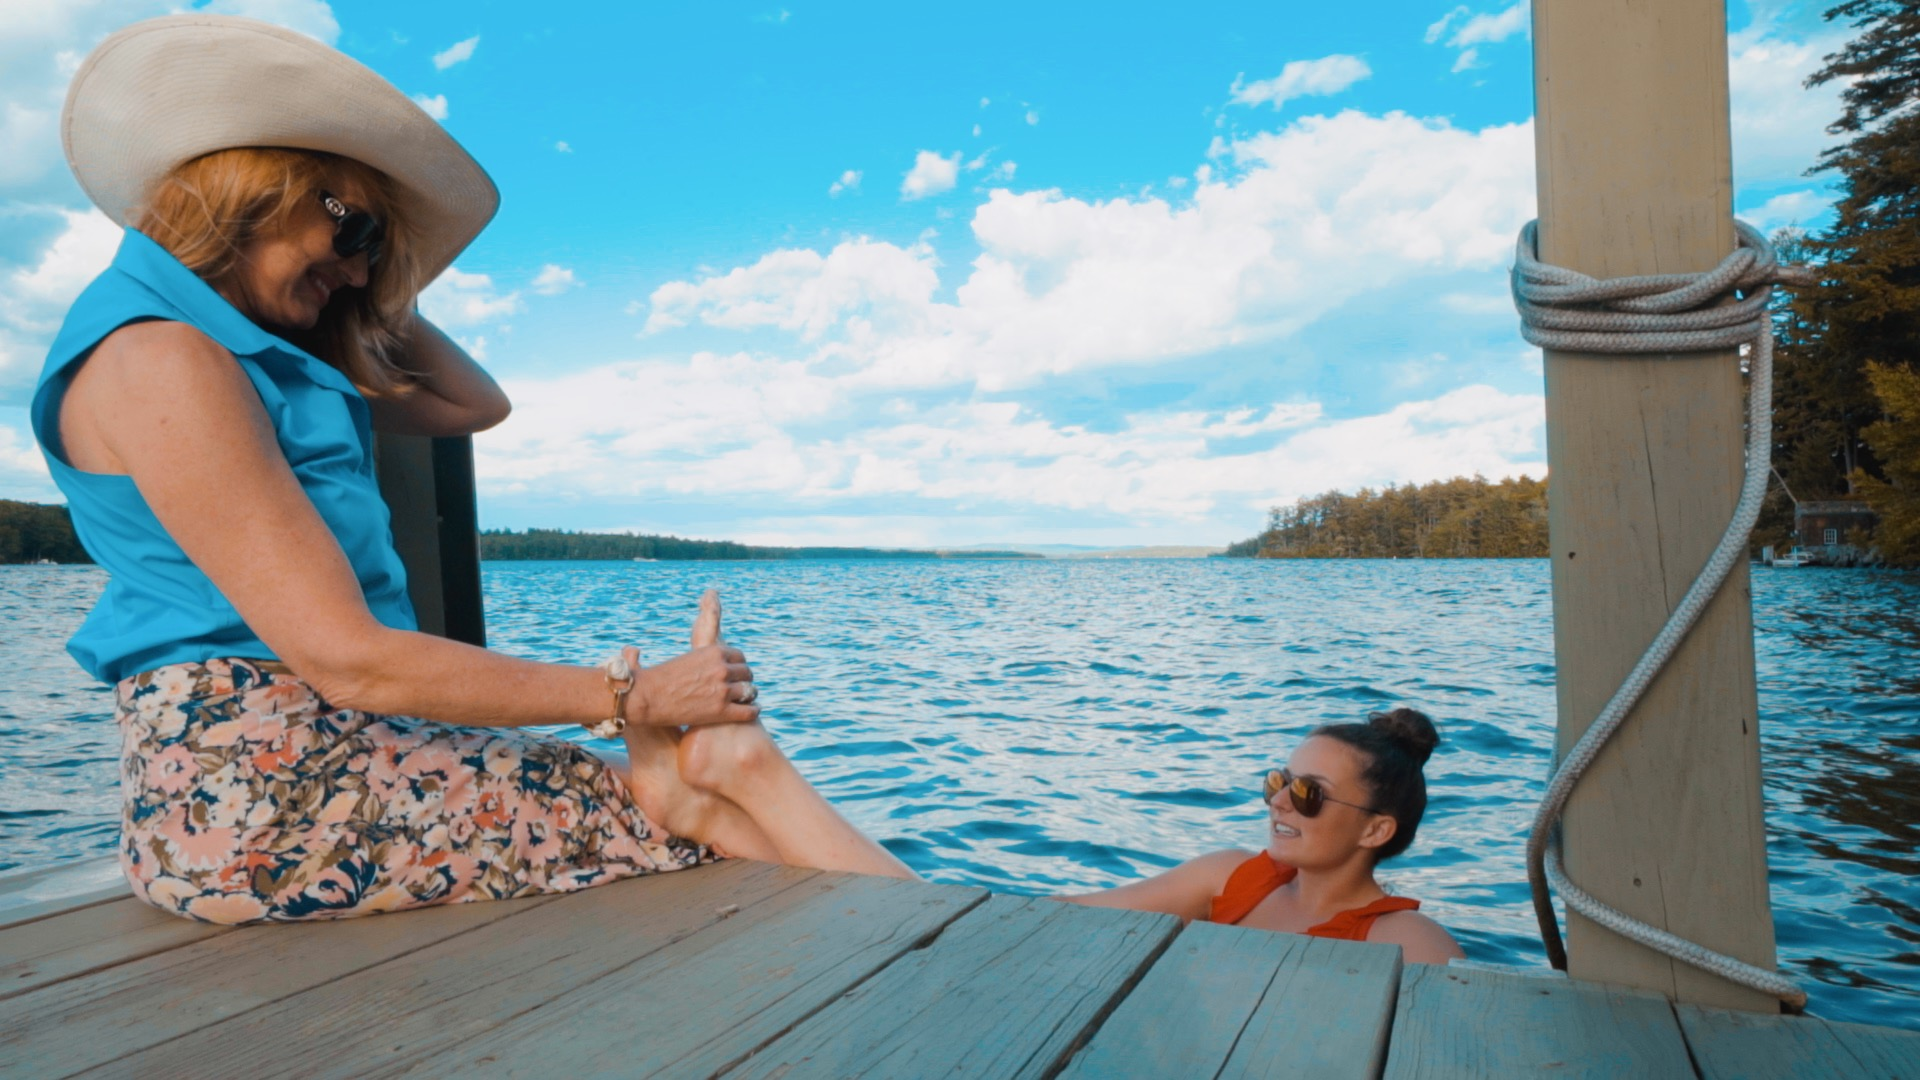 Actor Photo from 144 Veasey Shore Road Lake Winnipesaukee Lifestyle Video